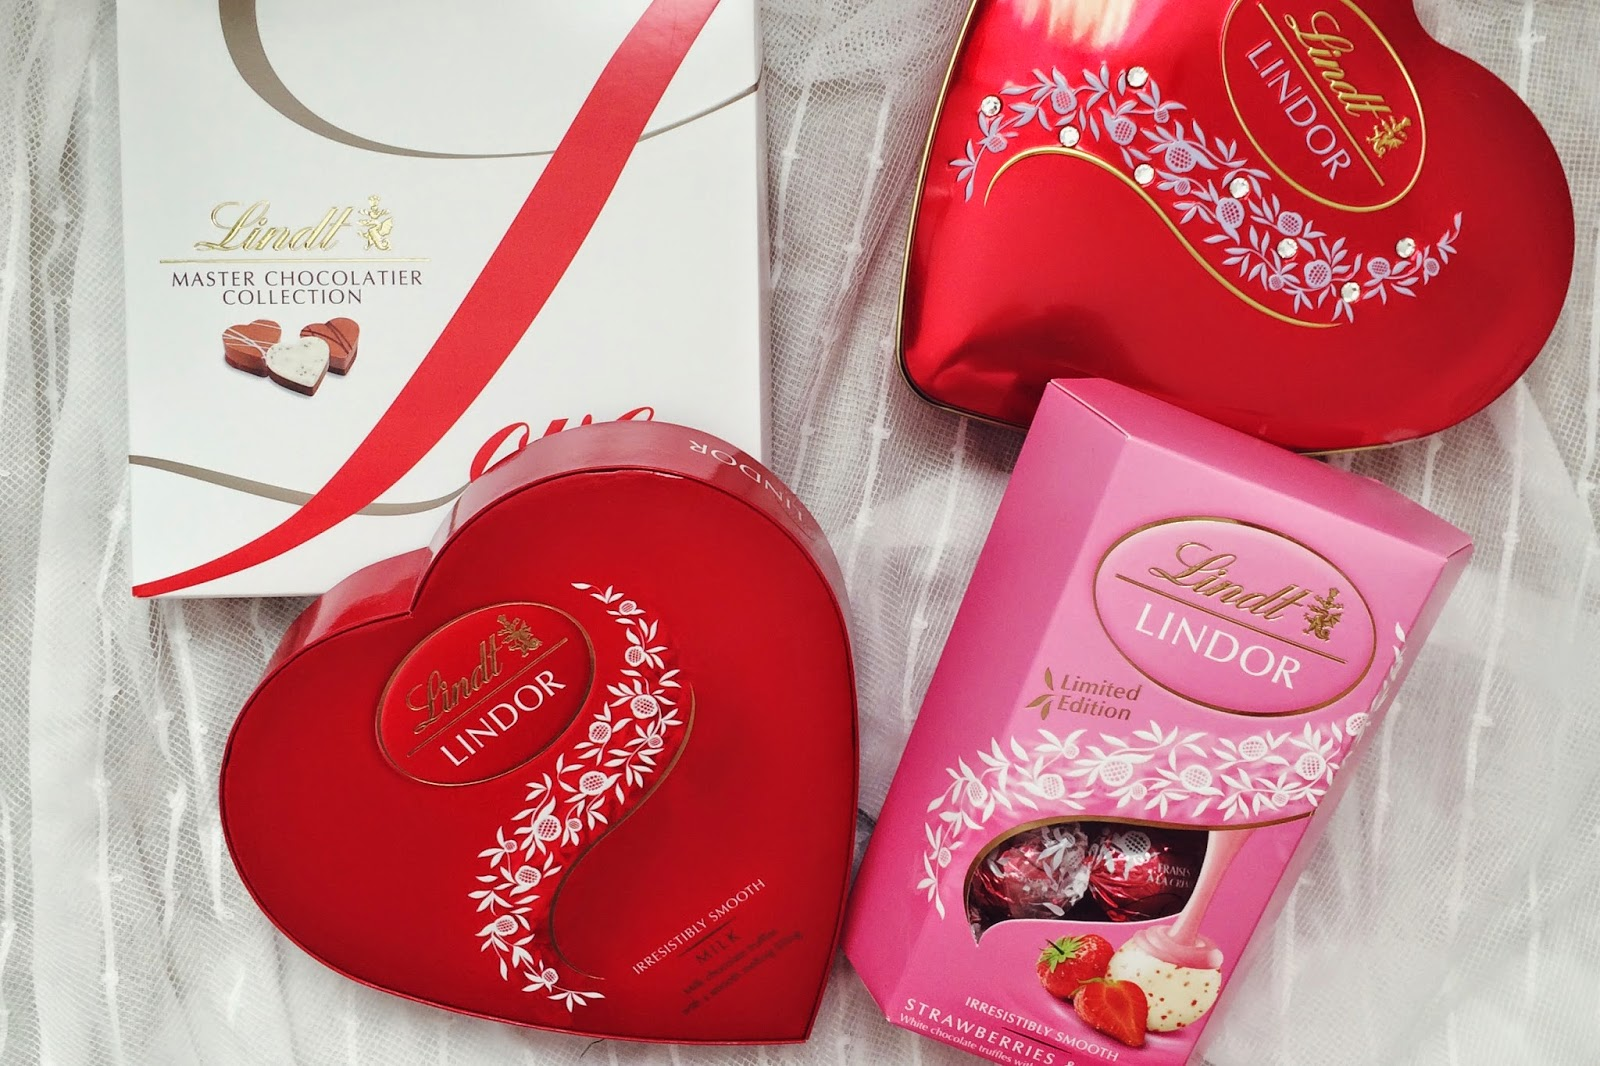 FashionFake, Valentines Day gift guide blog, UK lifestyle bloggers, UK food bloggers, Lindt chocolates, Lindor chocolates